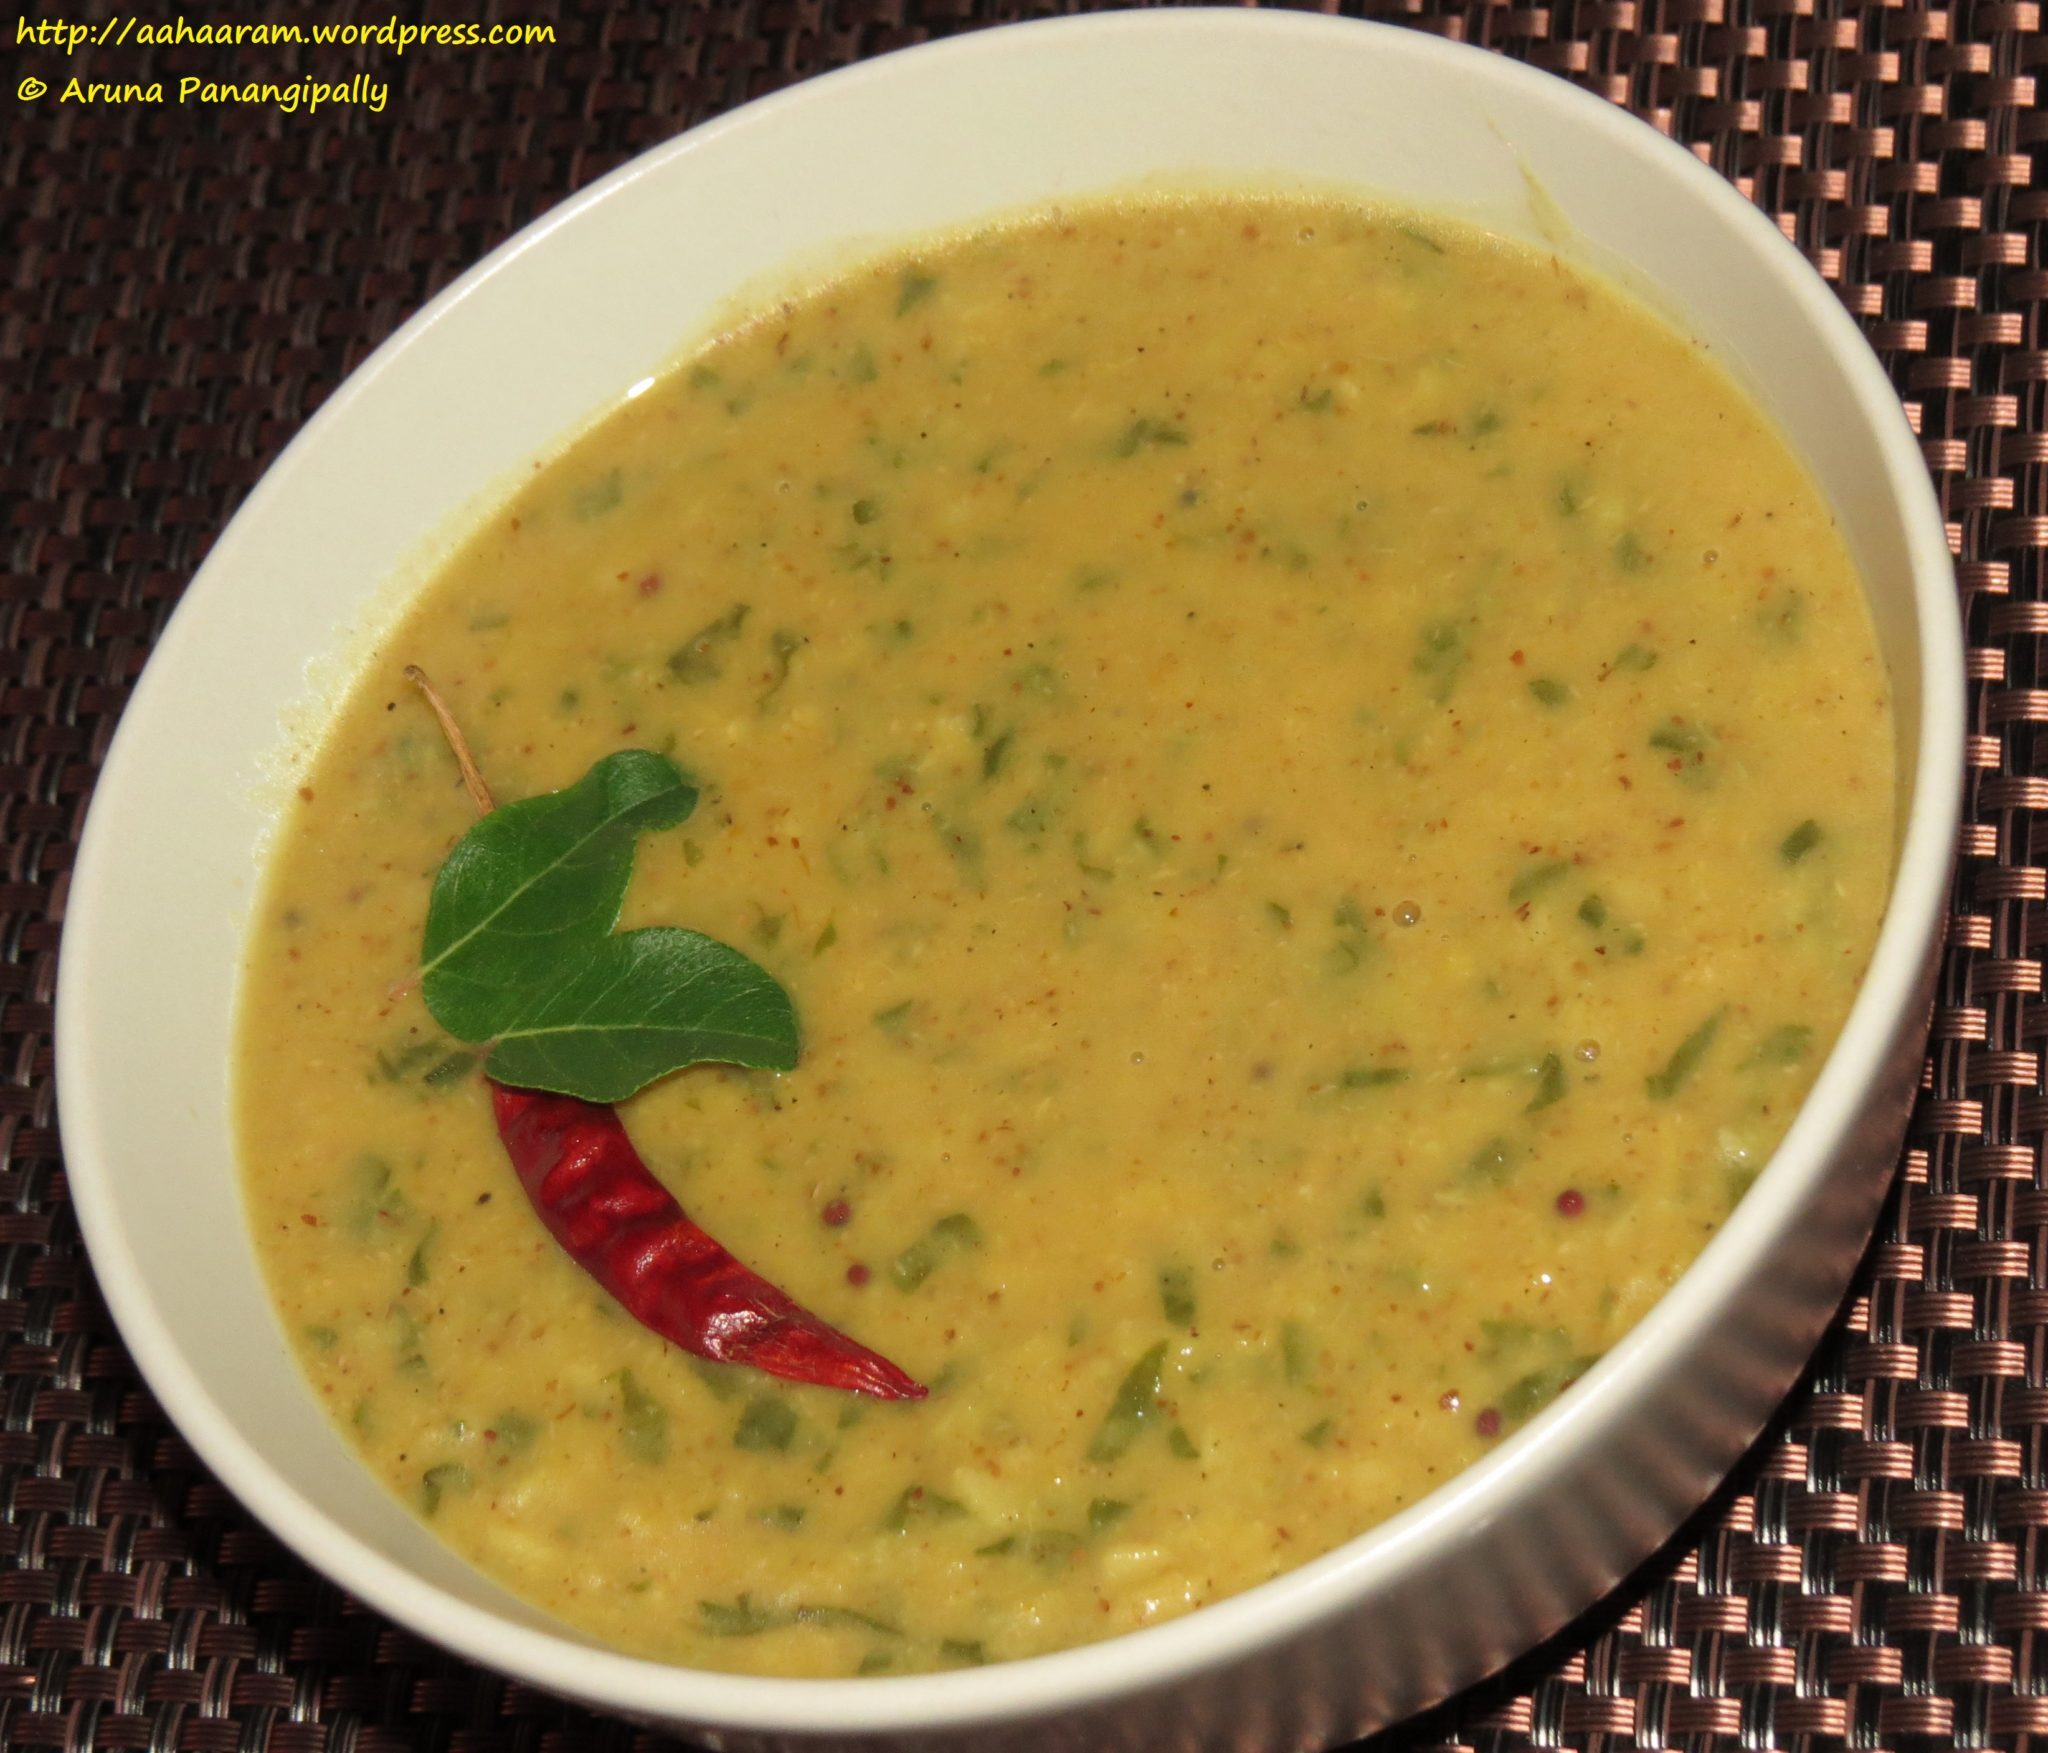 Paala Koora Pappu, Palak Dal, Lentils with Spinach – 1